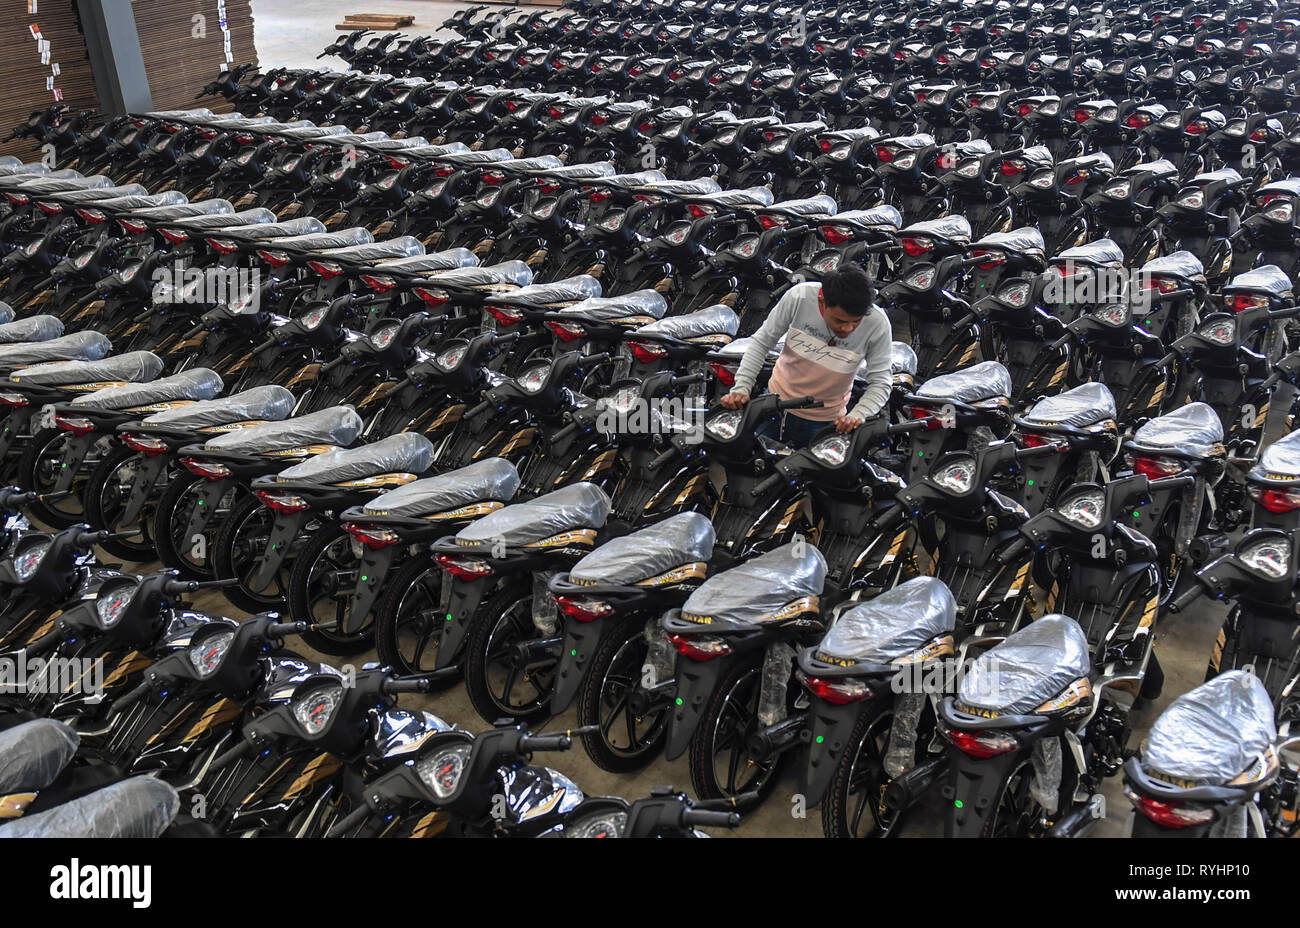 190313) -- RUILI, March 13, 2019 (Xinhua) -- Completed motorcycles